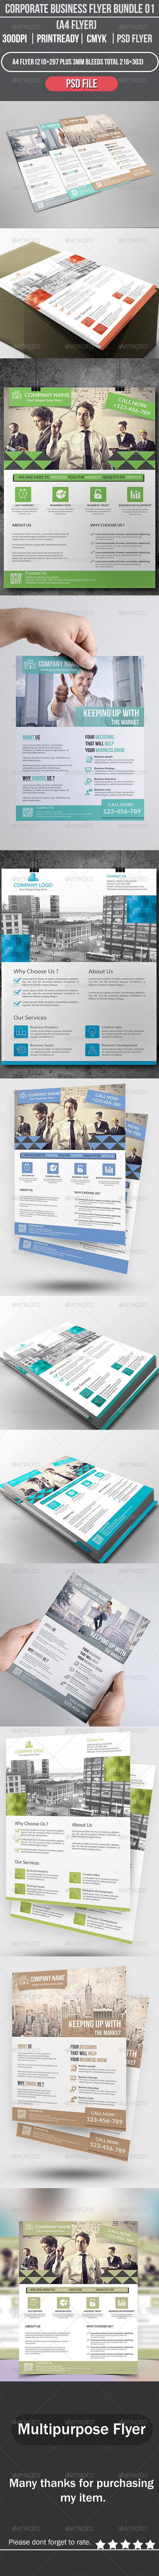 GraphicRiver Corporate Business Flyer Bundle 01 8776995